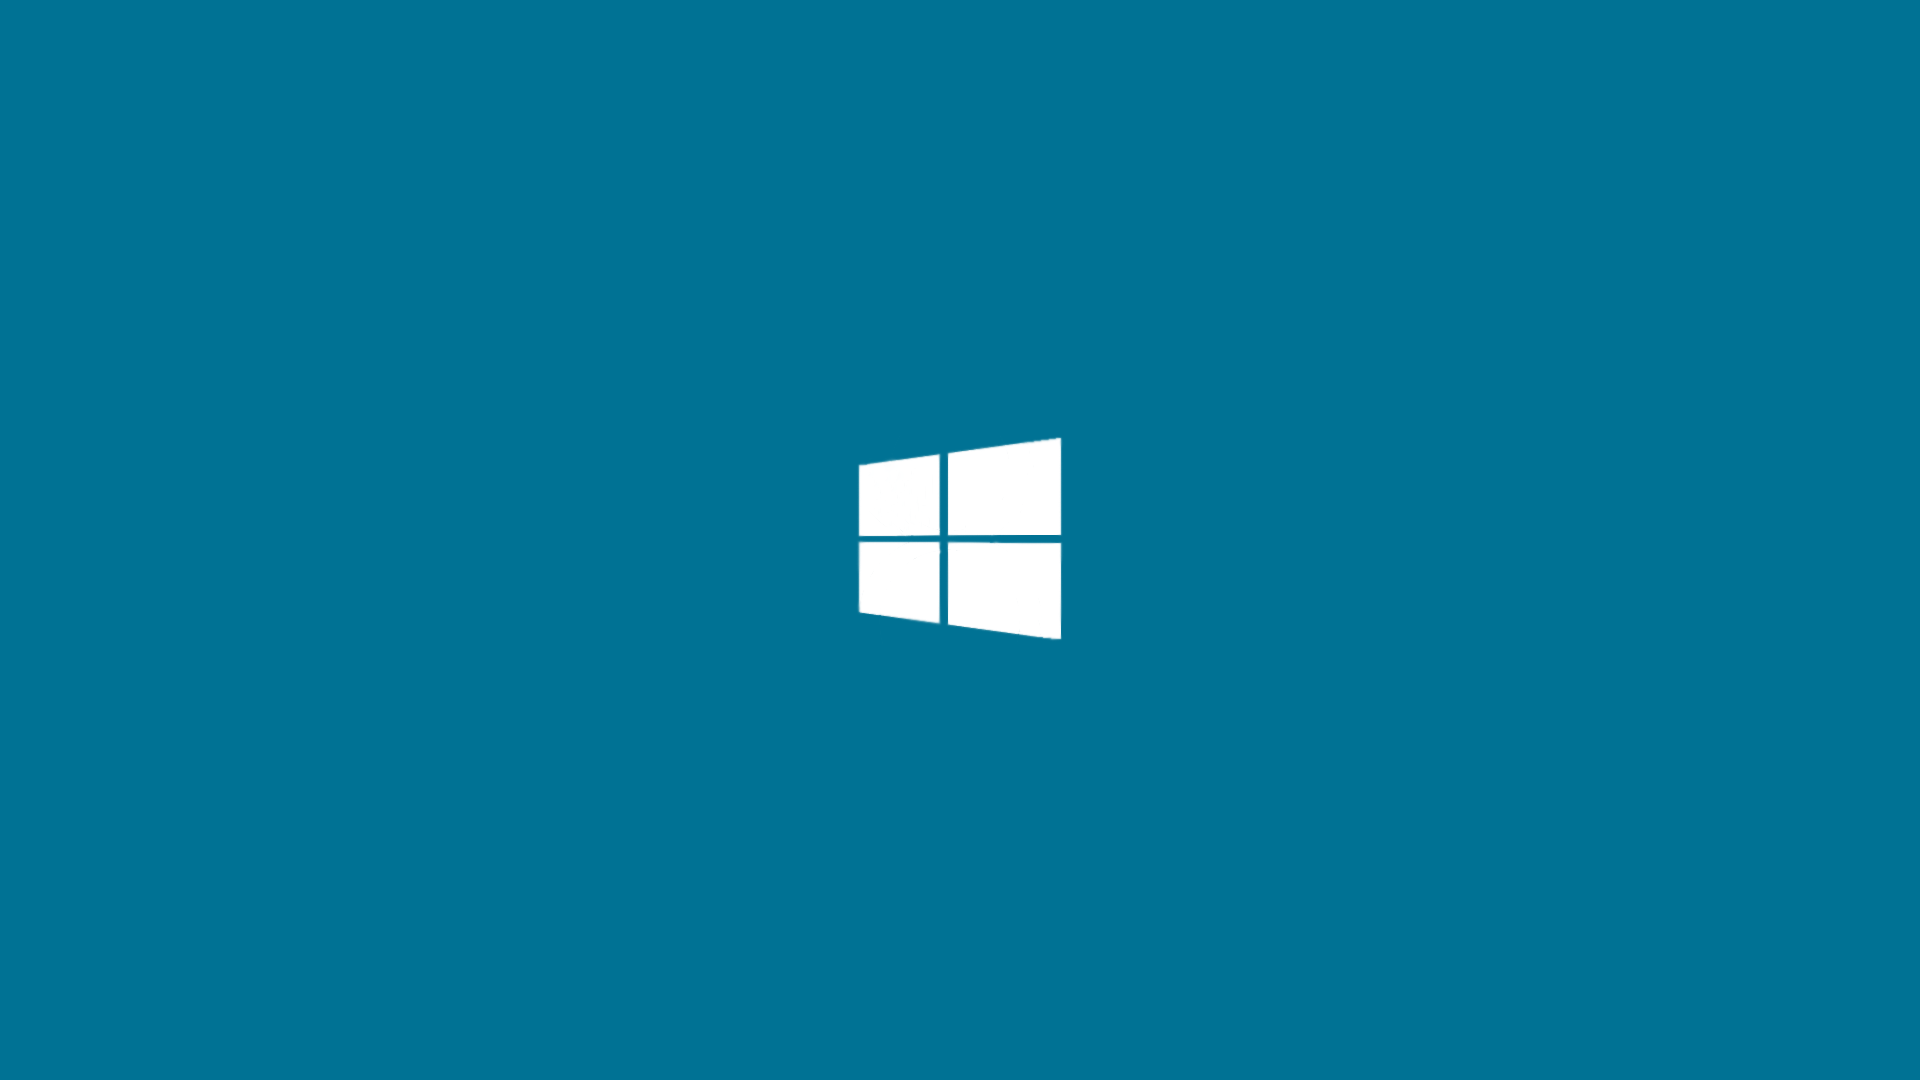 View topic   Windows 8 Photoshop Wallpapers Updated   BetaArchive 1920x1080